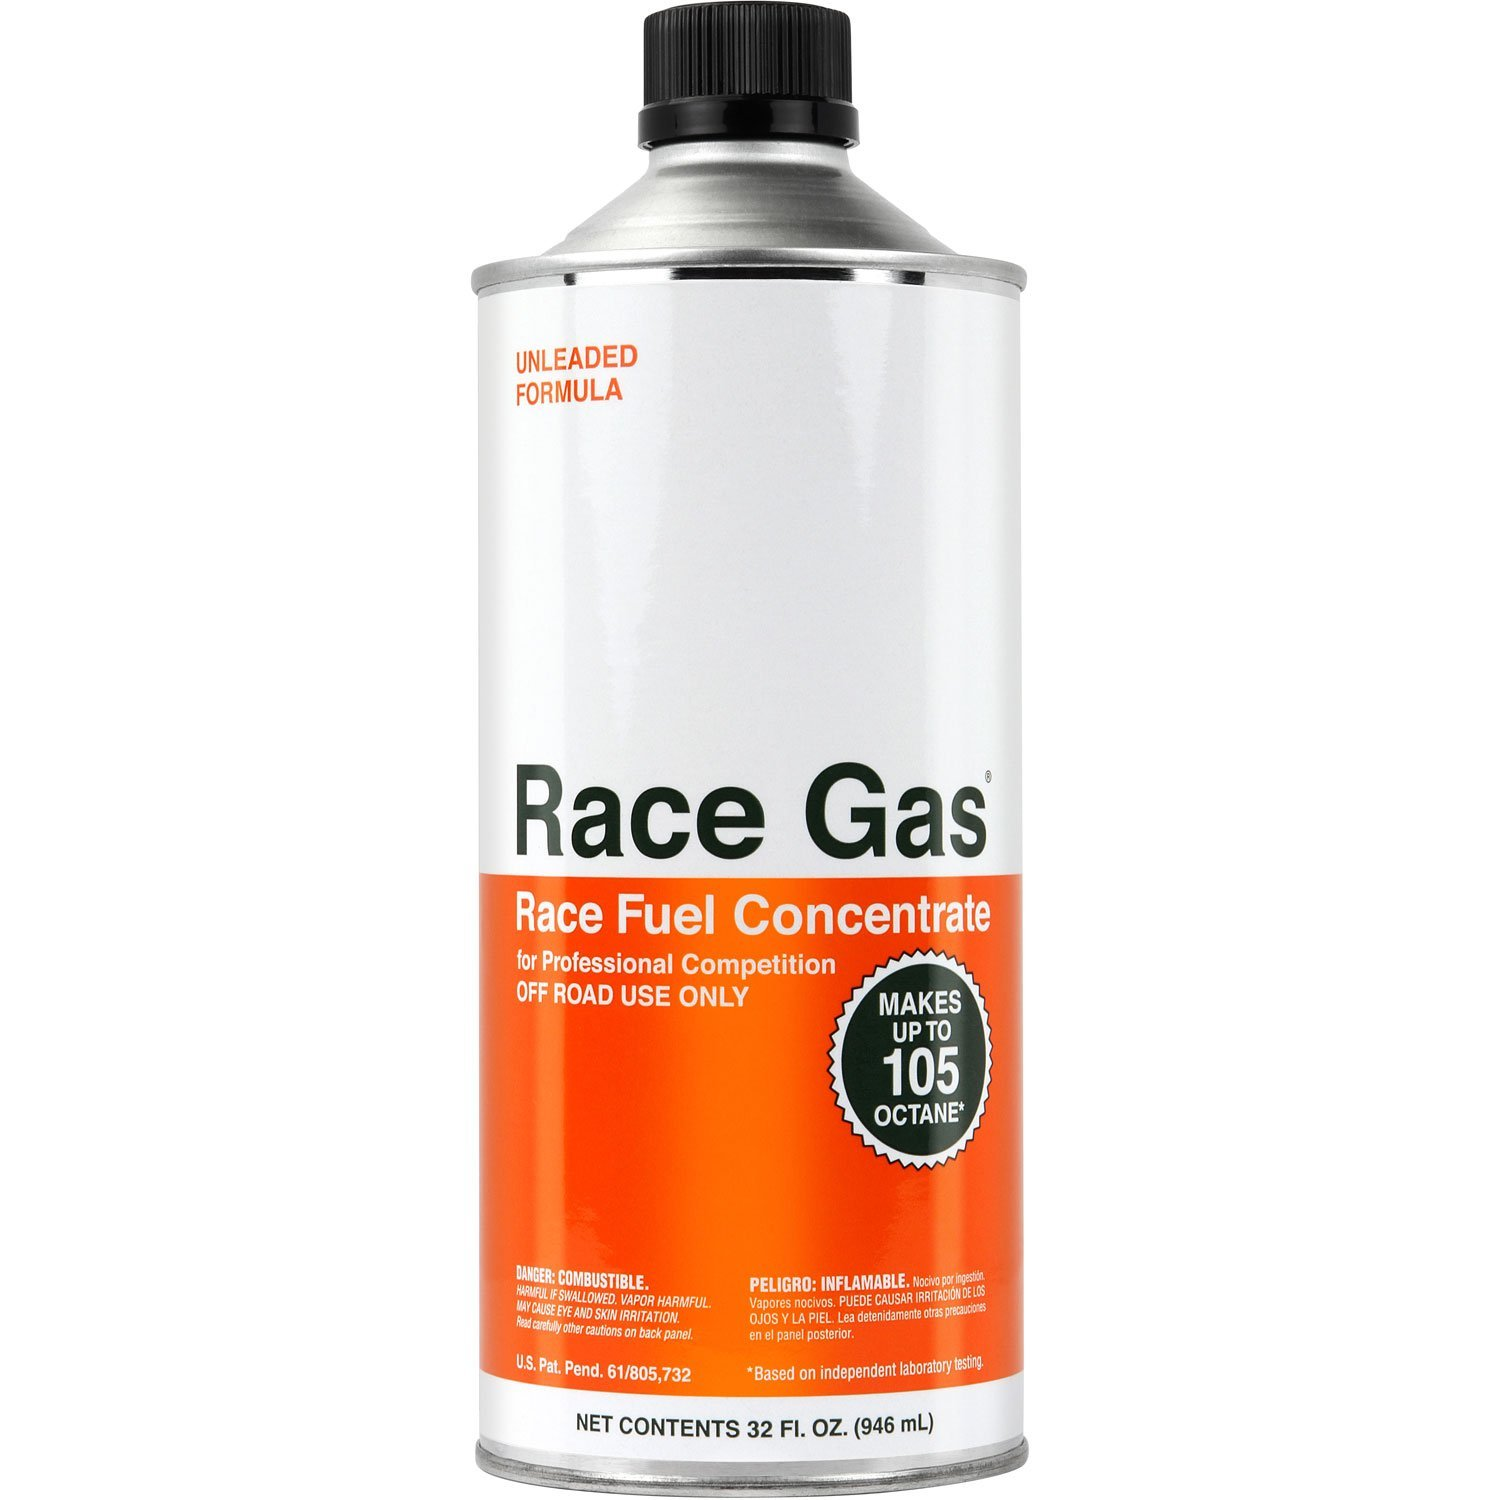 RACE-GAS 100032 Race Fuel Concentrate 100 to 105 Octane